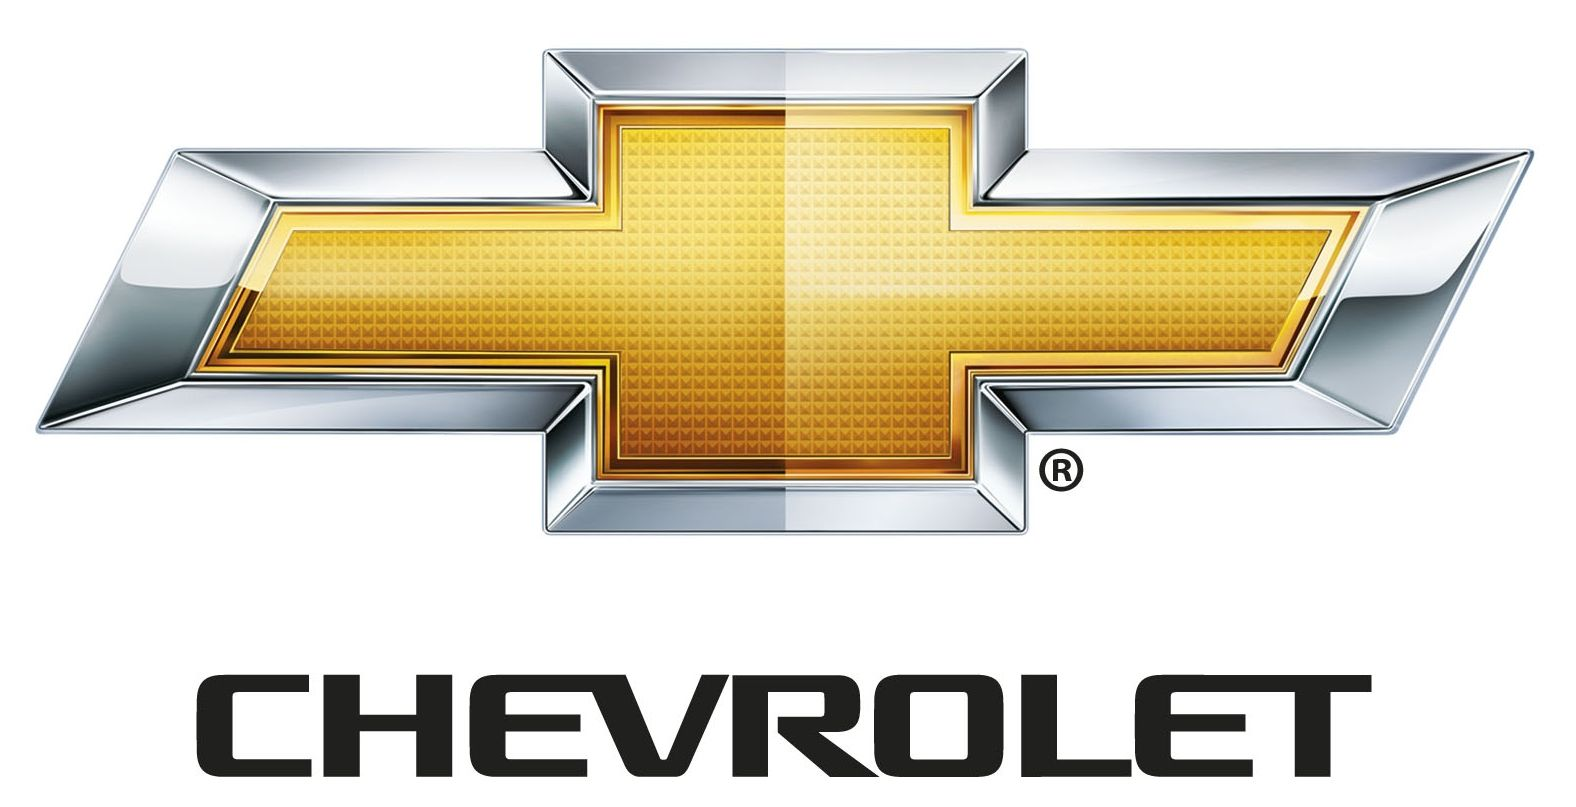 Image for Chevrolet Text Logo Png HQ Wallpaper | Crepes | Pinterest